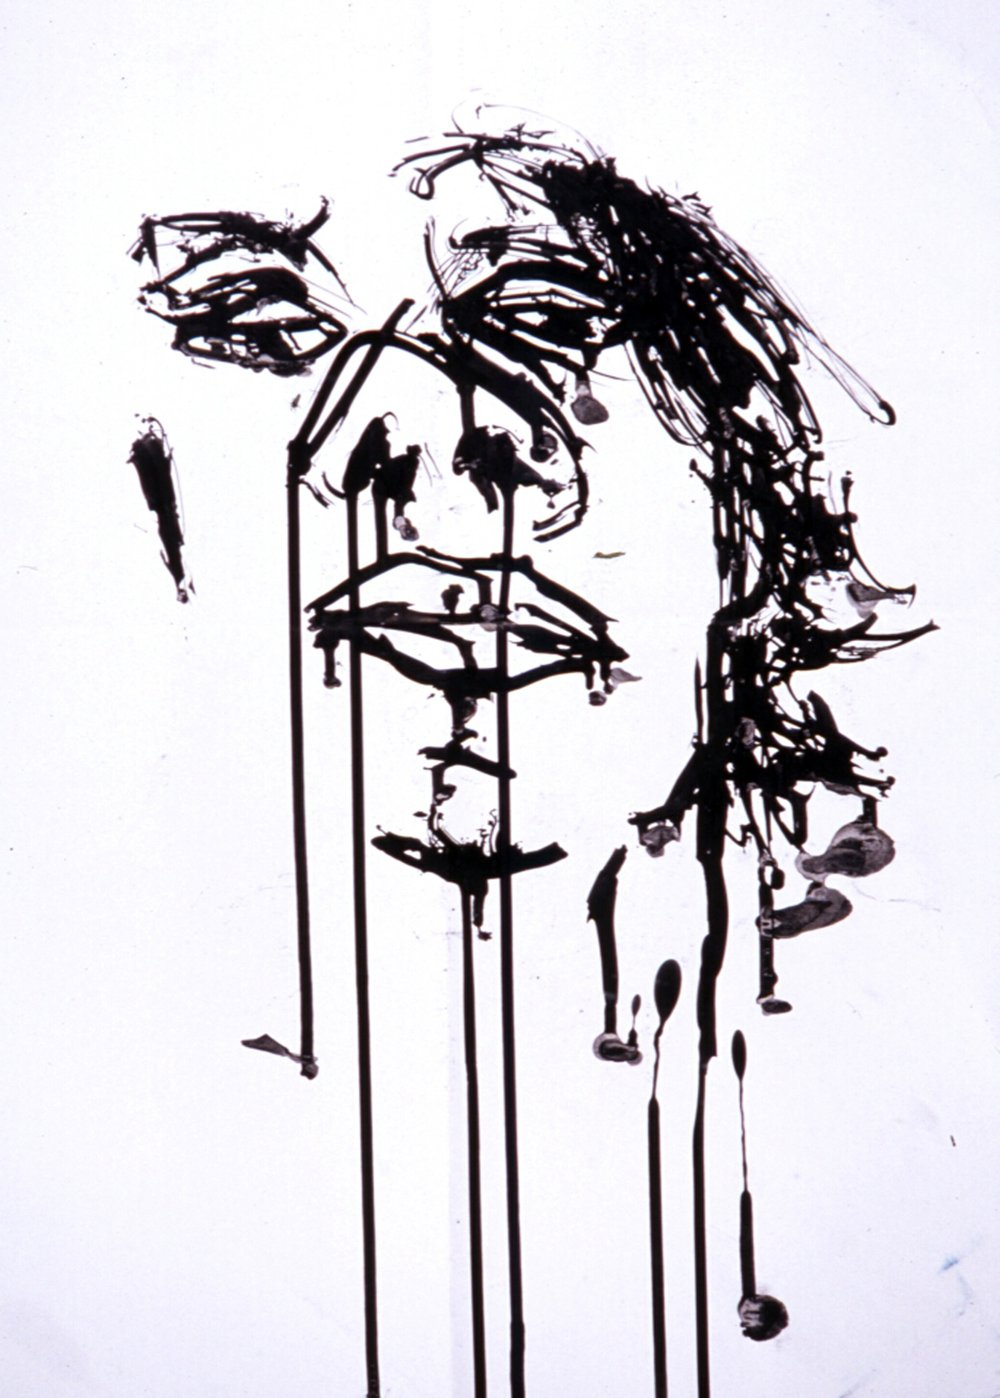 Untitled (Self portrait), 2001